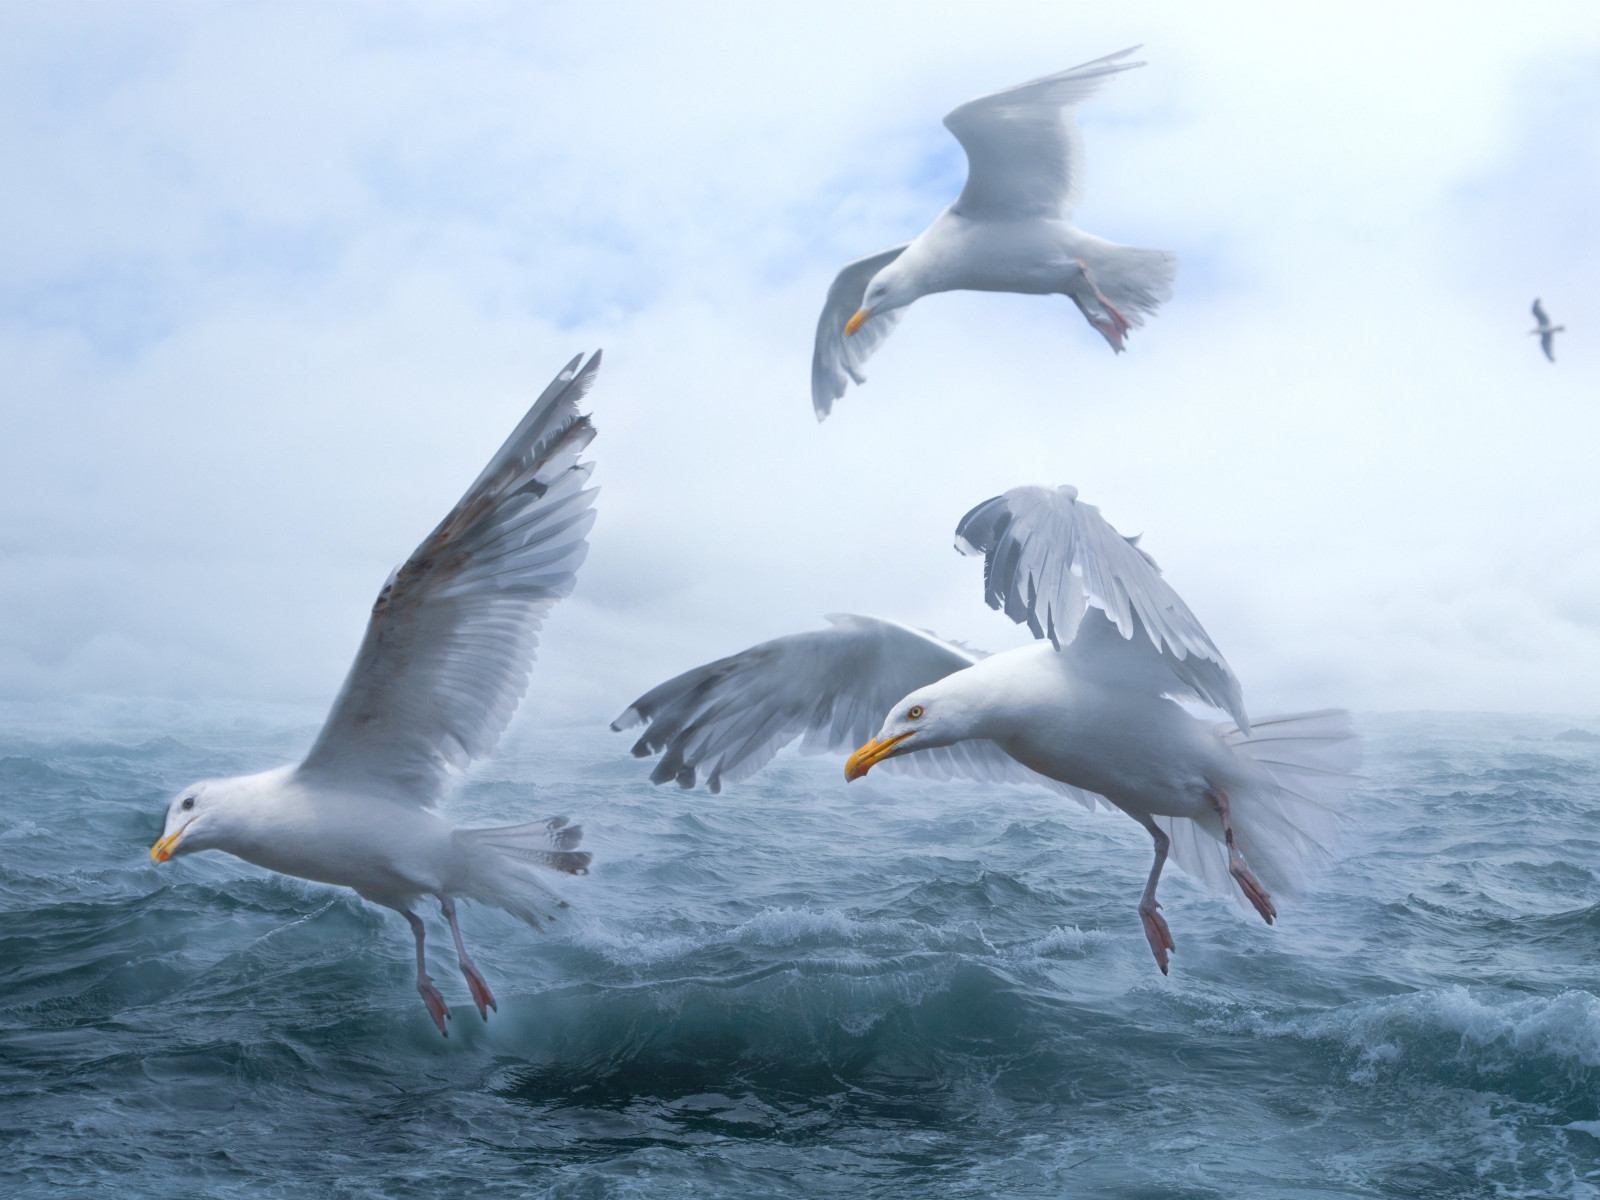 Seagulls above sea waves wallpaper 1600x1200